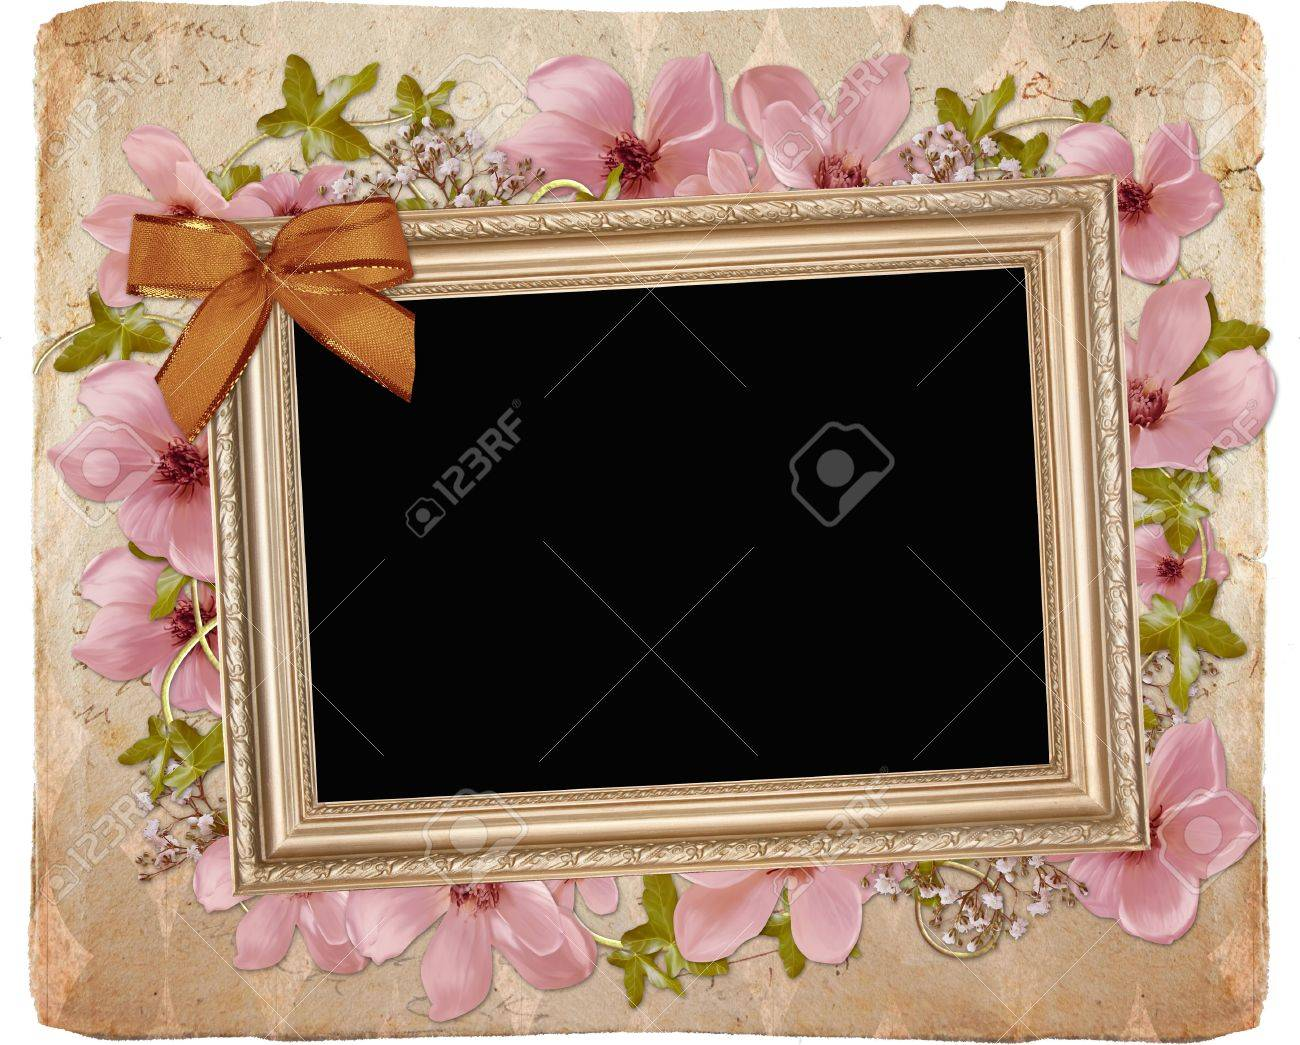 Framework for invitation or congratulation. Stock Photo - 9601369